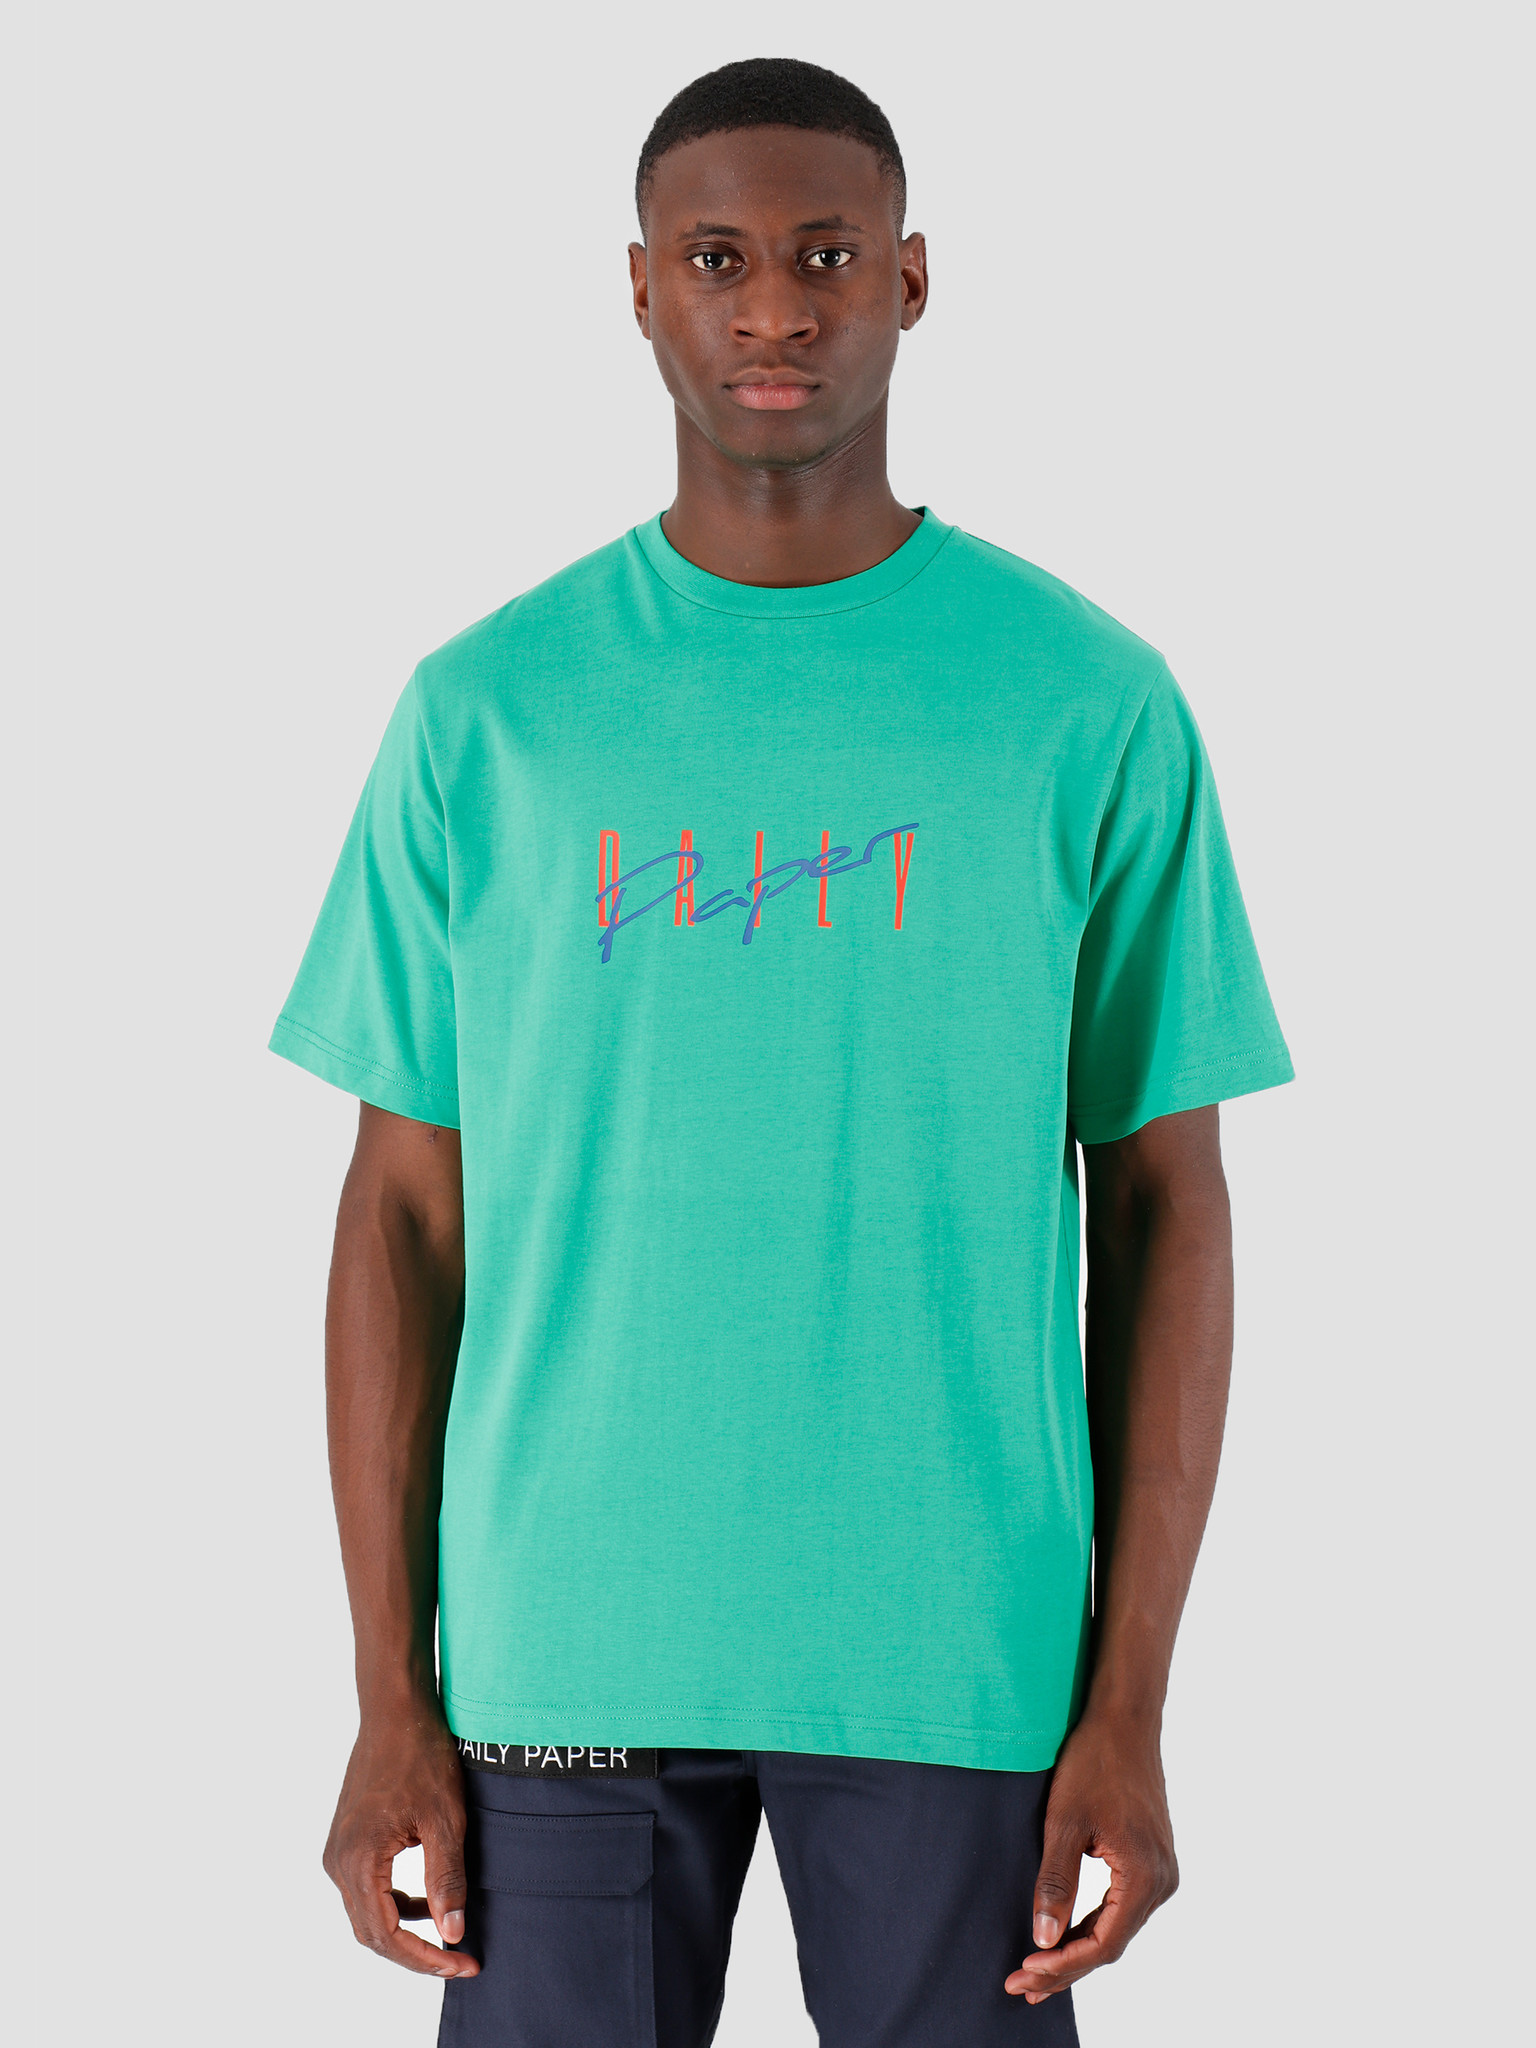 Daily Paper Daily Paper Genelly T-Shirt Jelly Bean 19F1TS16-01